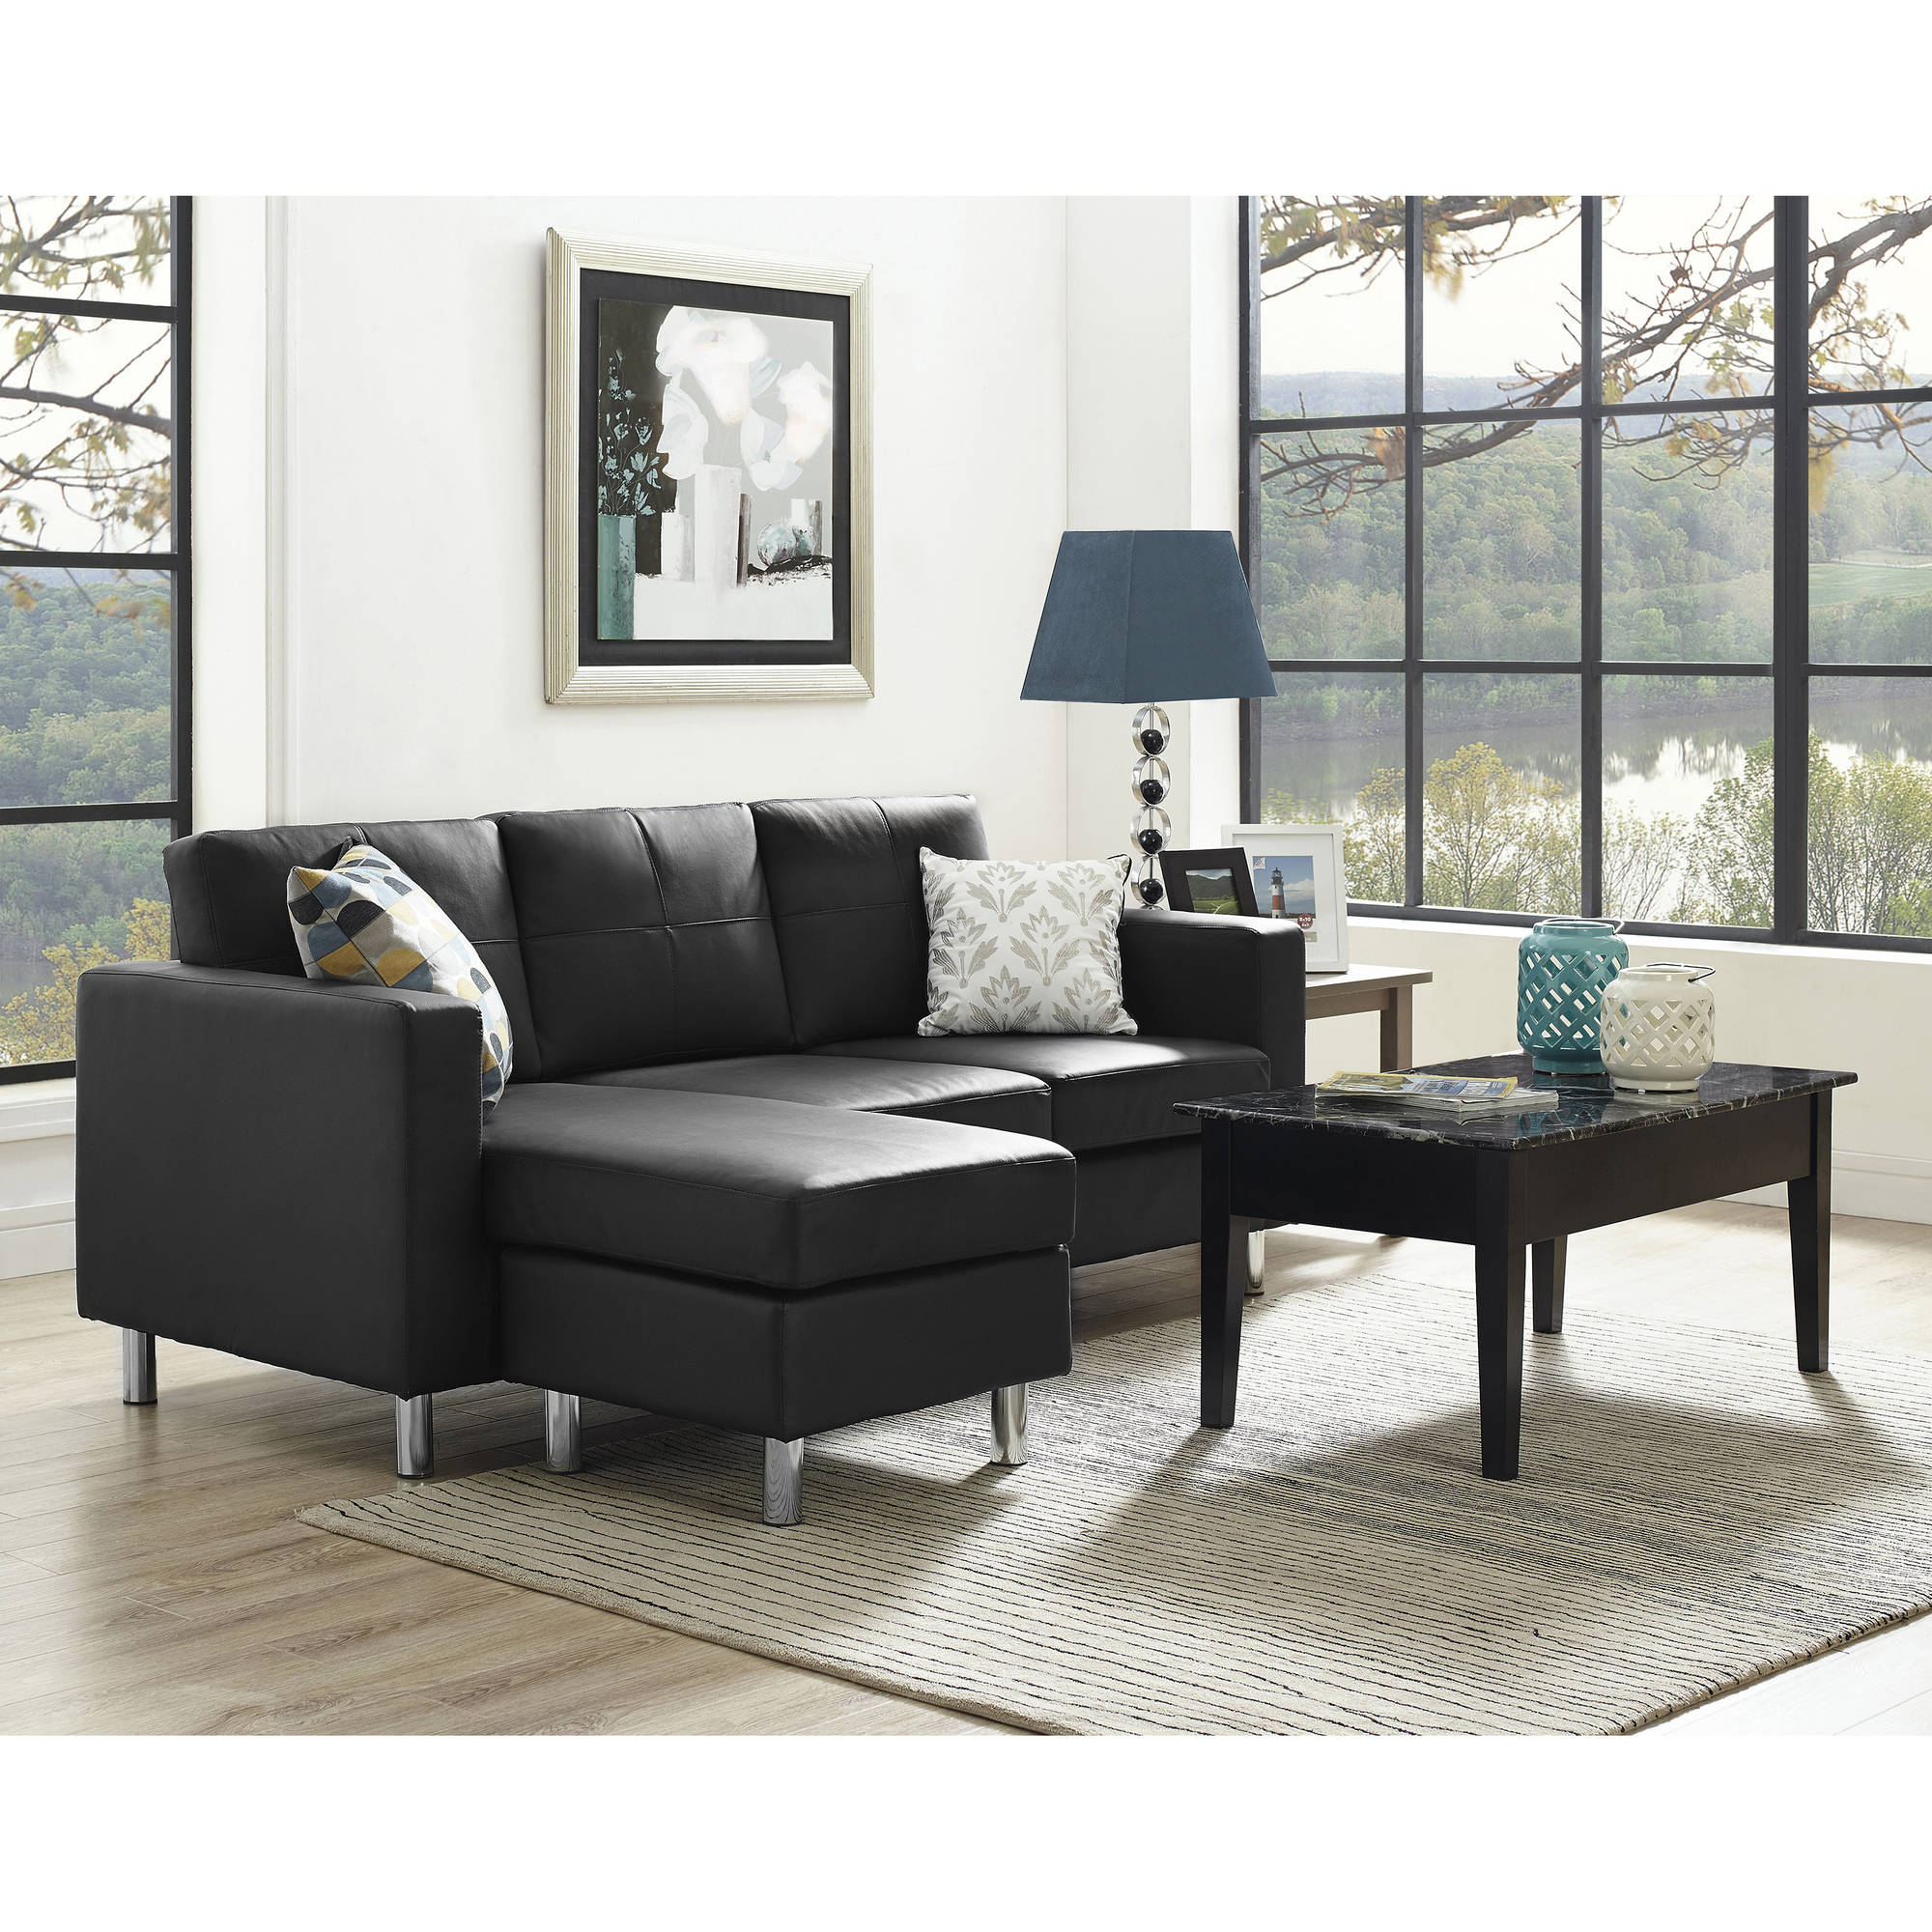 Inspirational Small Sectional Sofas For Small Spaces 64 In Modern Sofa Ideas with Small Sectional Sofas For Small Spaces